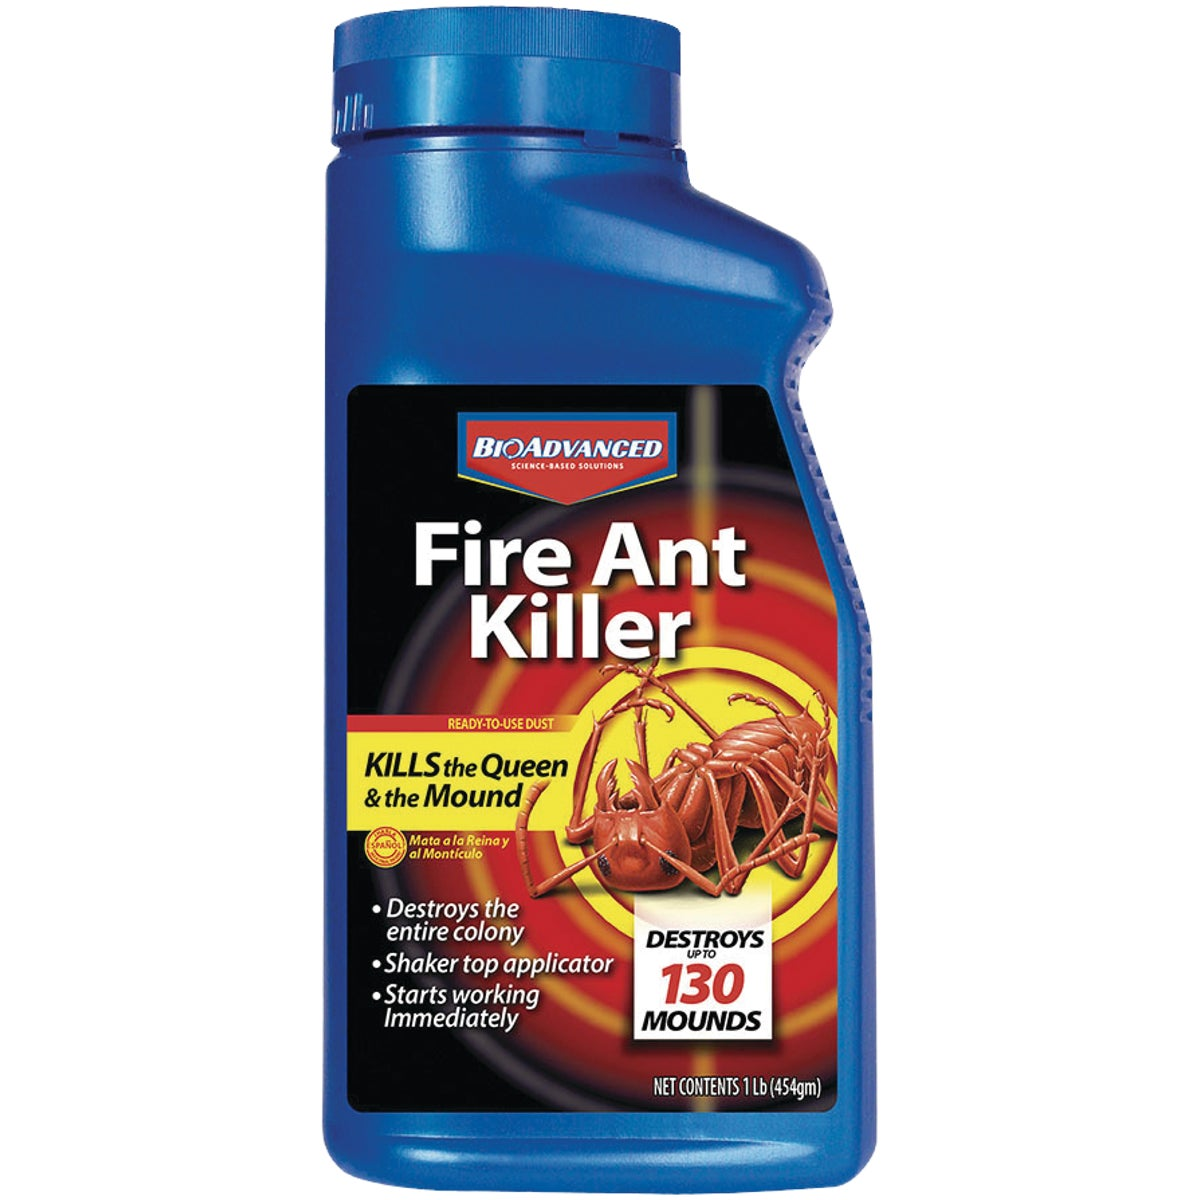 16OZ FIRE ANT KILLER